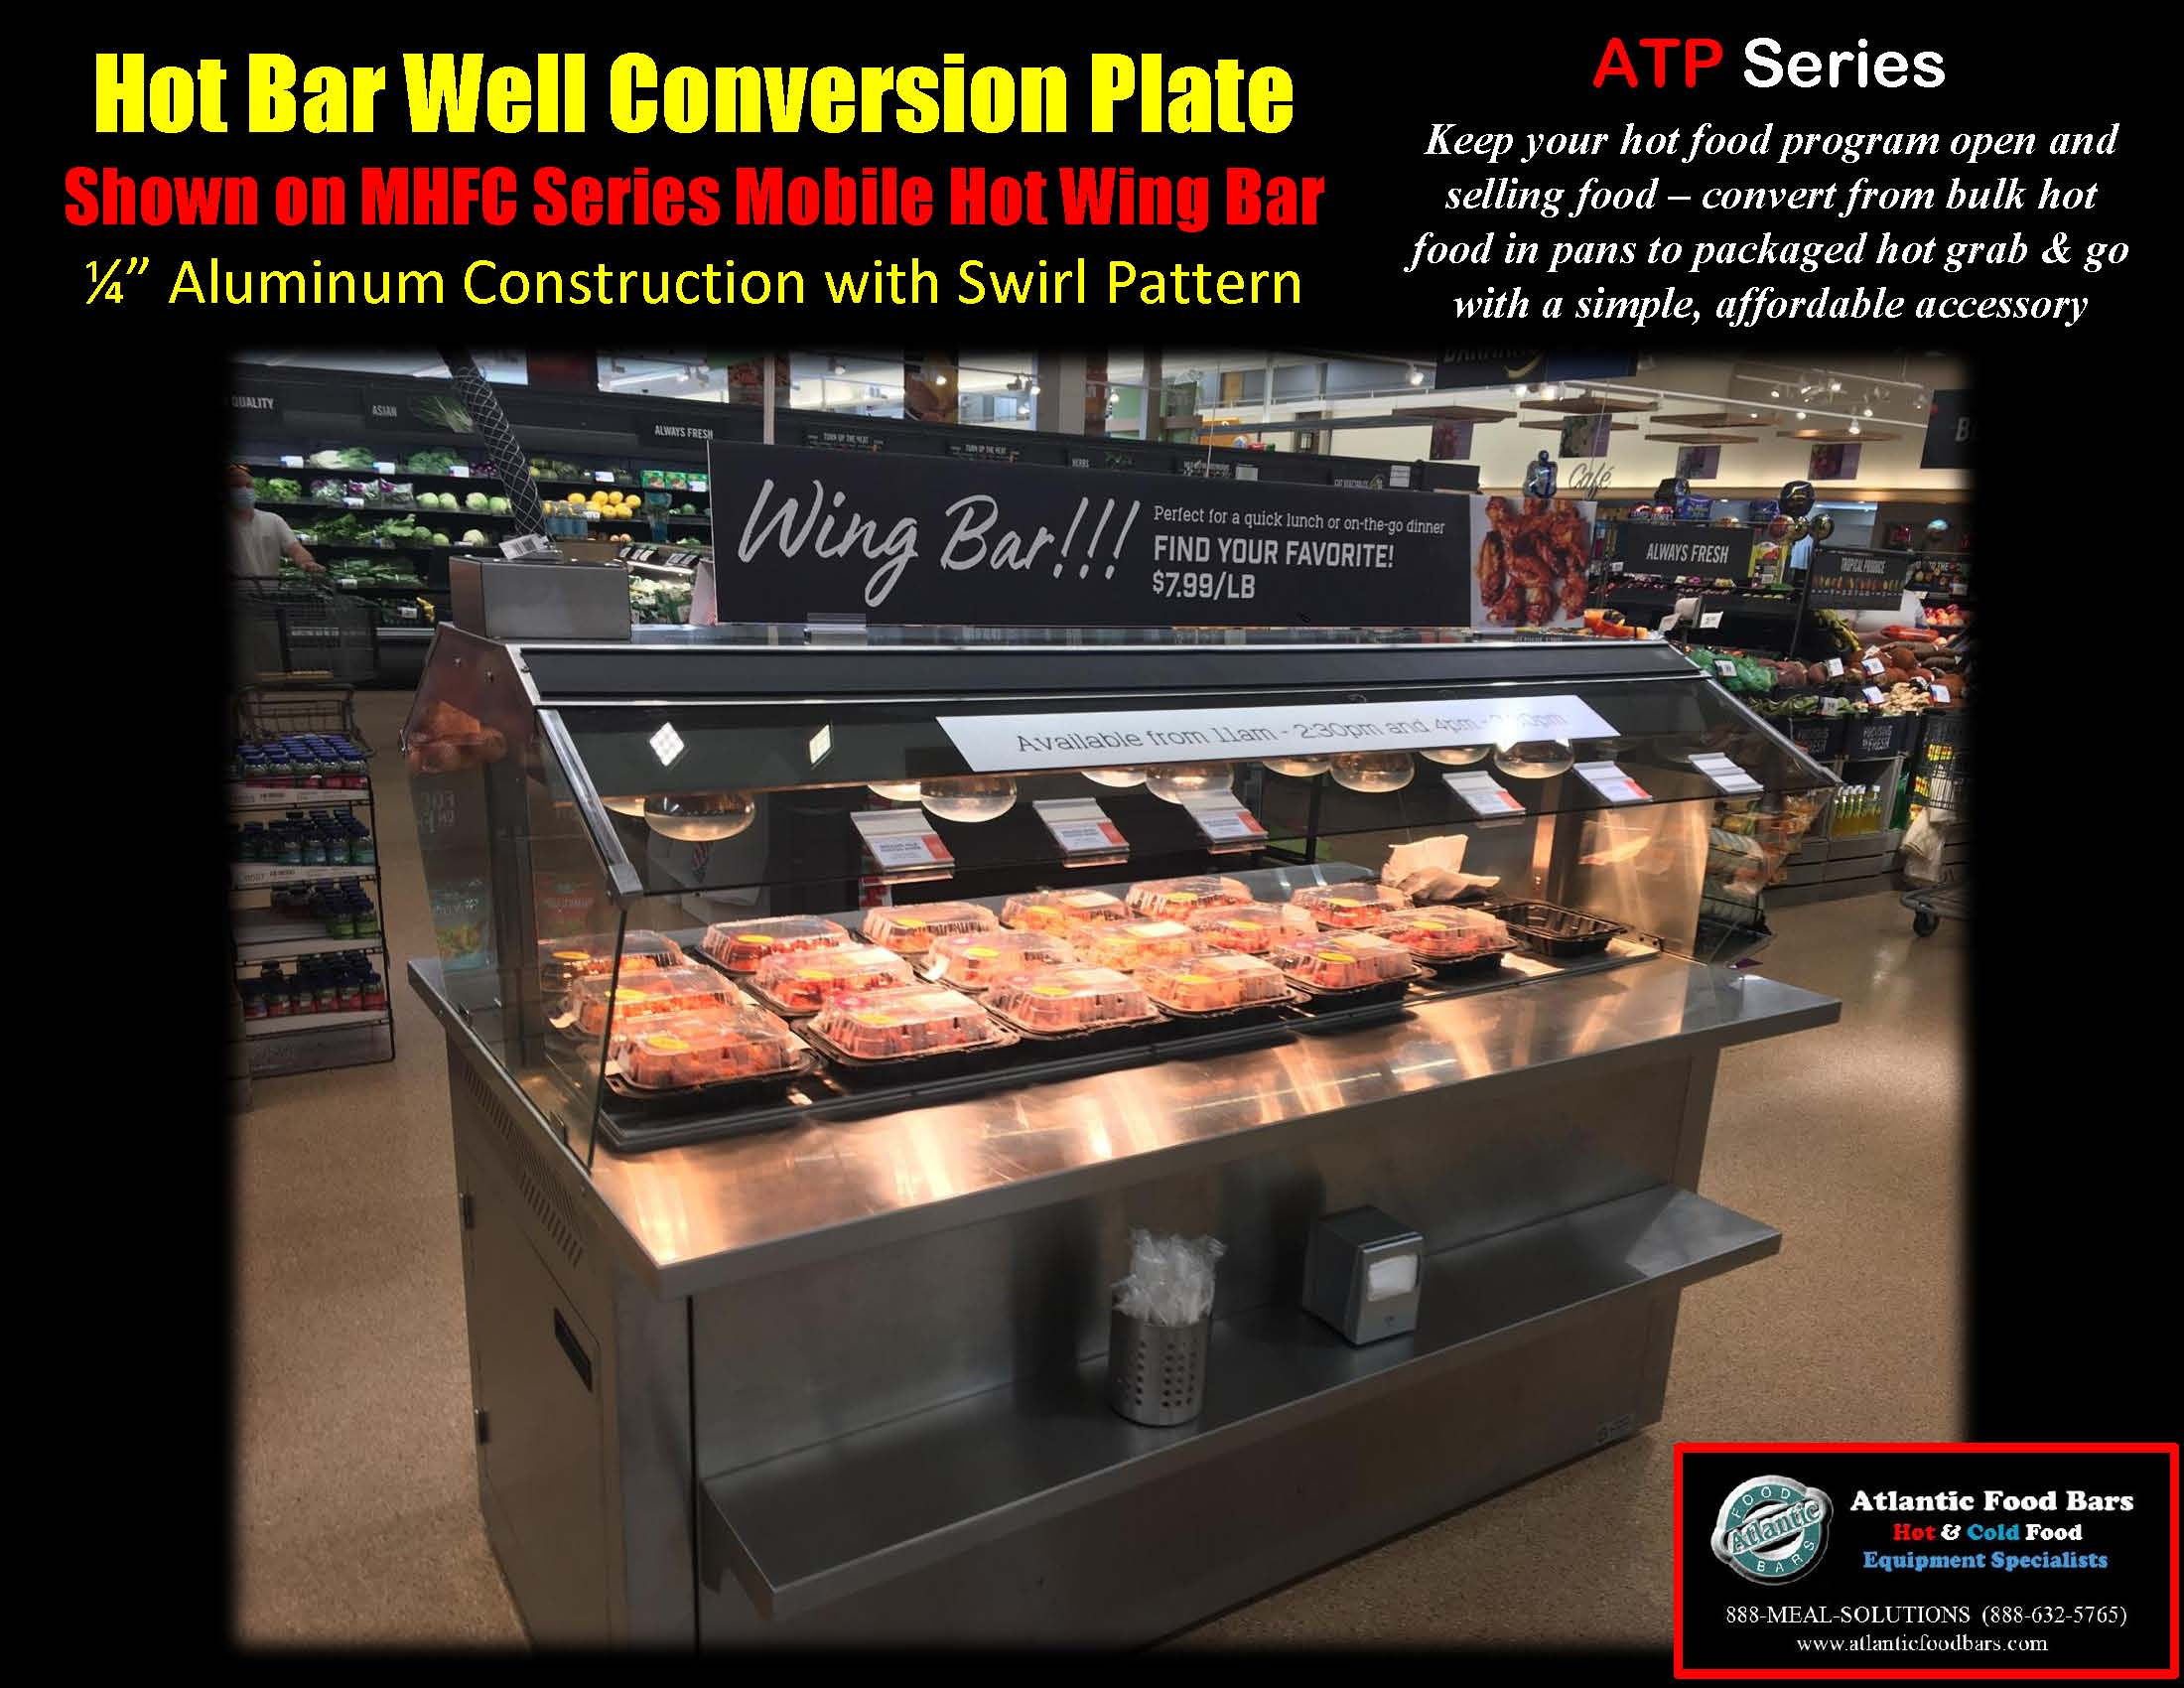 Atlantic Food Bars - ATP Series Aluminum Hot Well Cover Plate shown on MHFC Series Wing Bar and End Cap Hot Food Bar - Conversion to Grab and Go Merchandising 6-10-20_Page_1